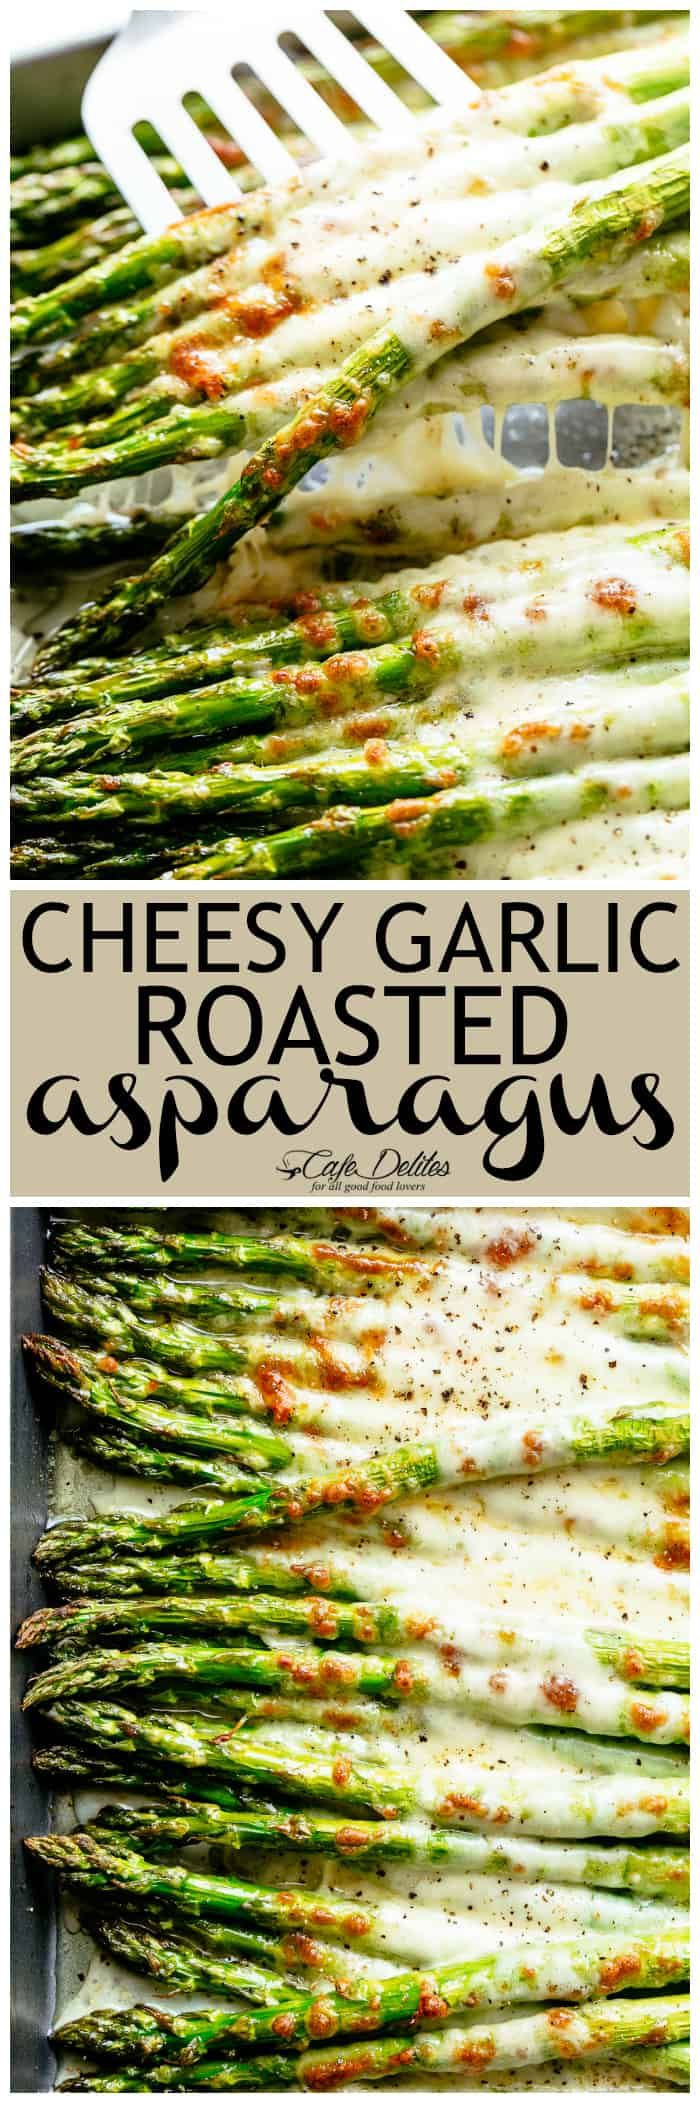 Cheesy Garlic Roasted Asparagus - Cafe Delites